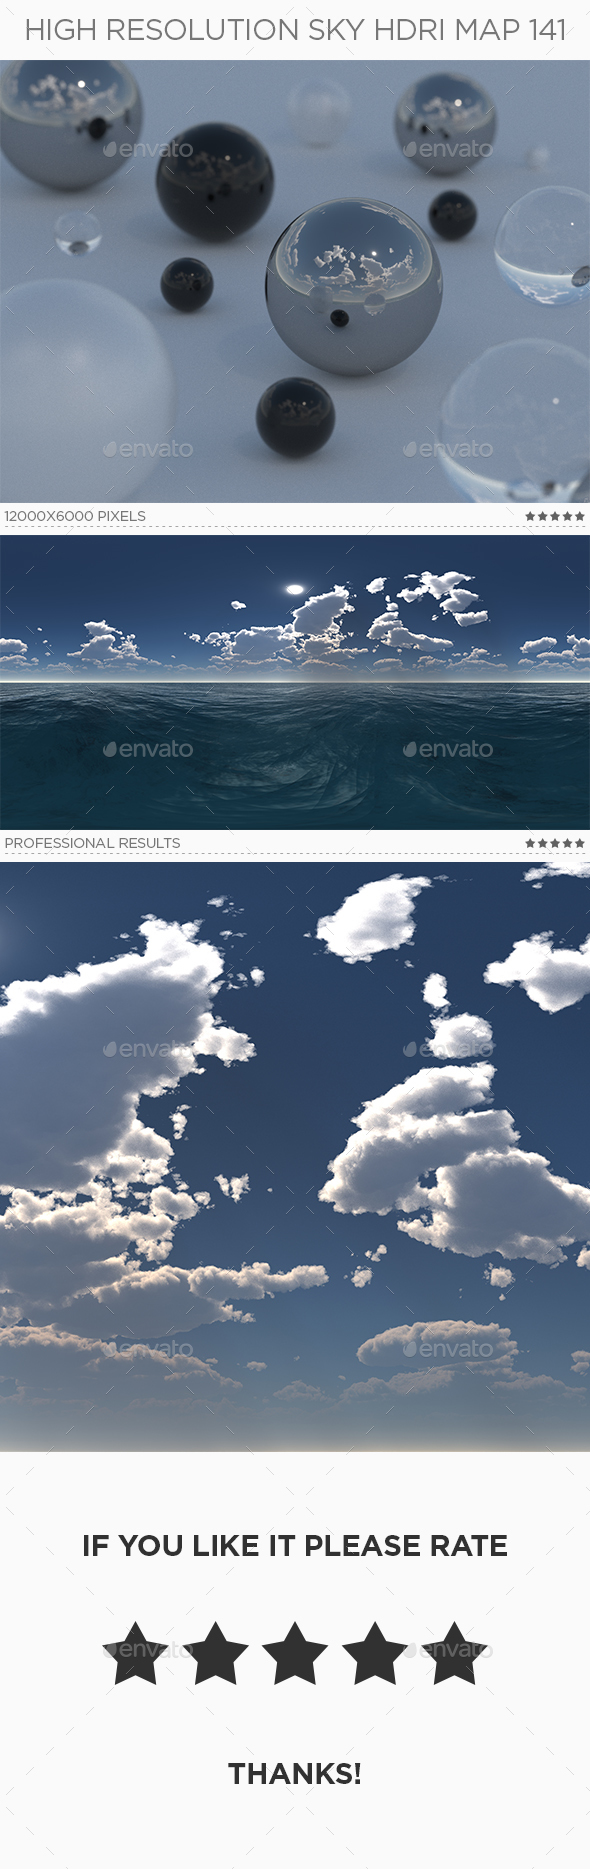 High Resolution Sky HDRi Map 141 - 3DOcean Item for Sale